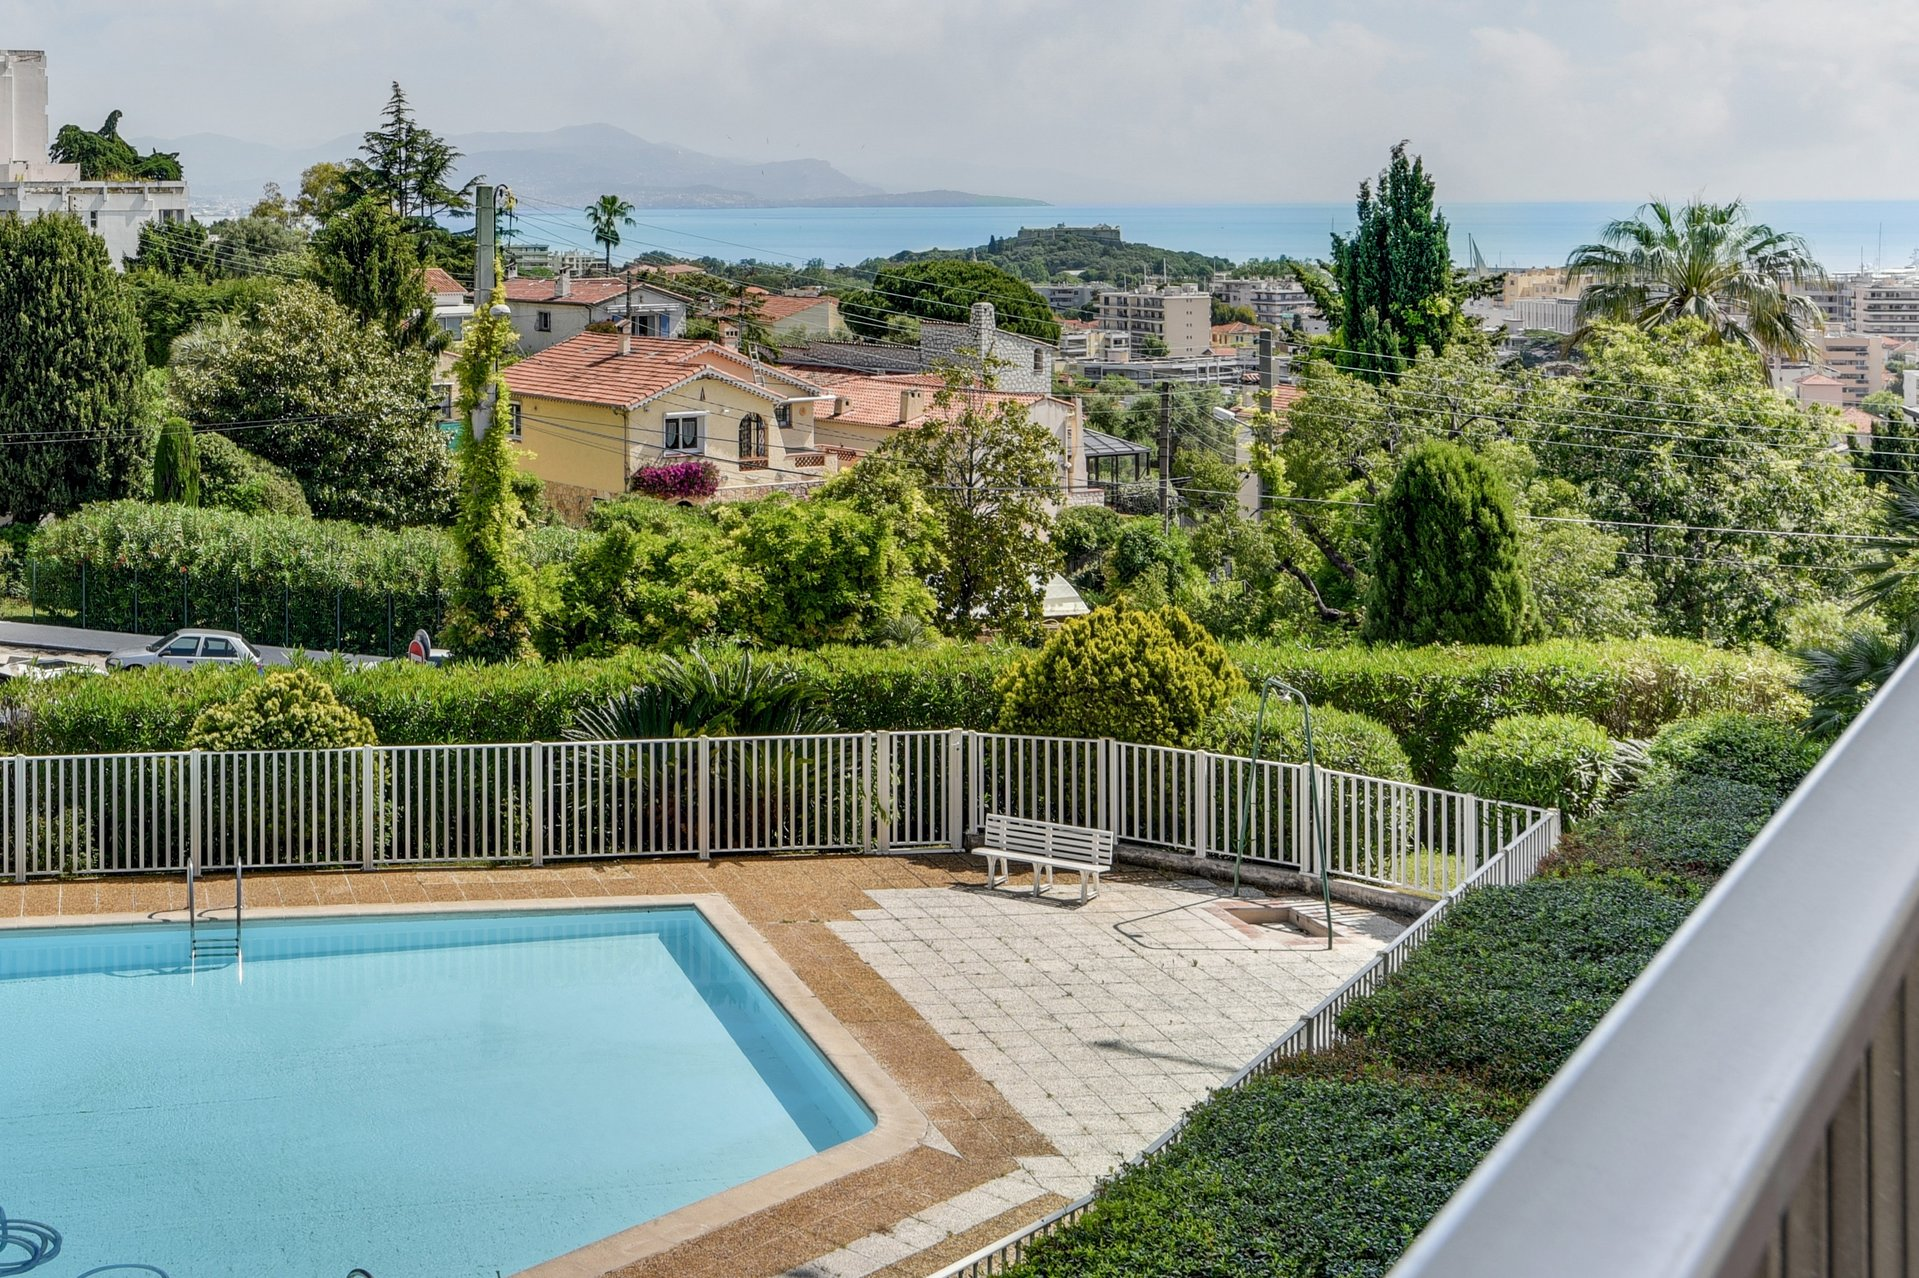 ANTIBES - Charming 2 bedroom flat in residence with pool, walking distance to centre